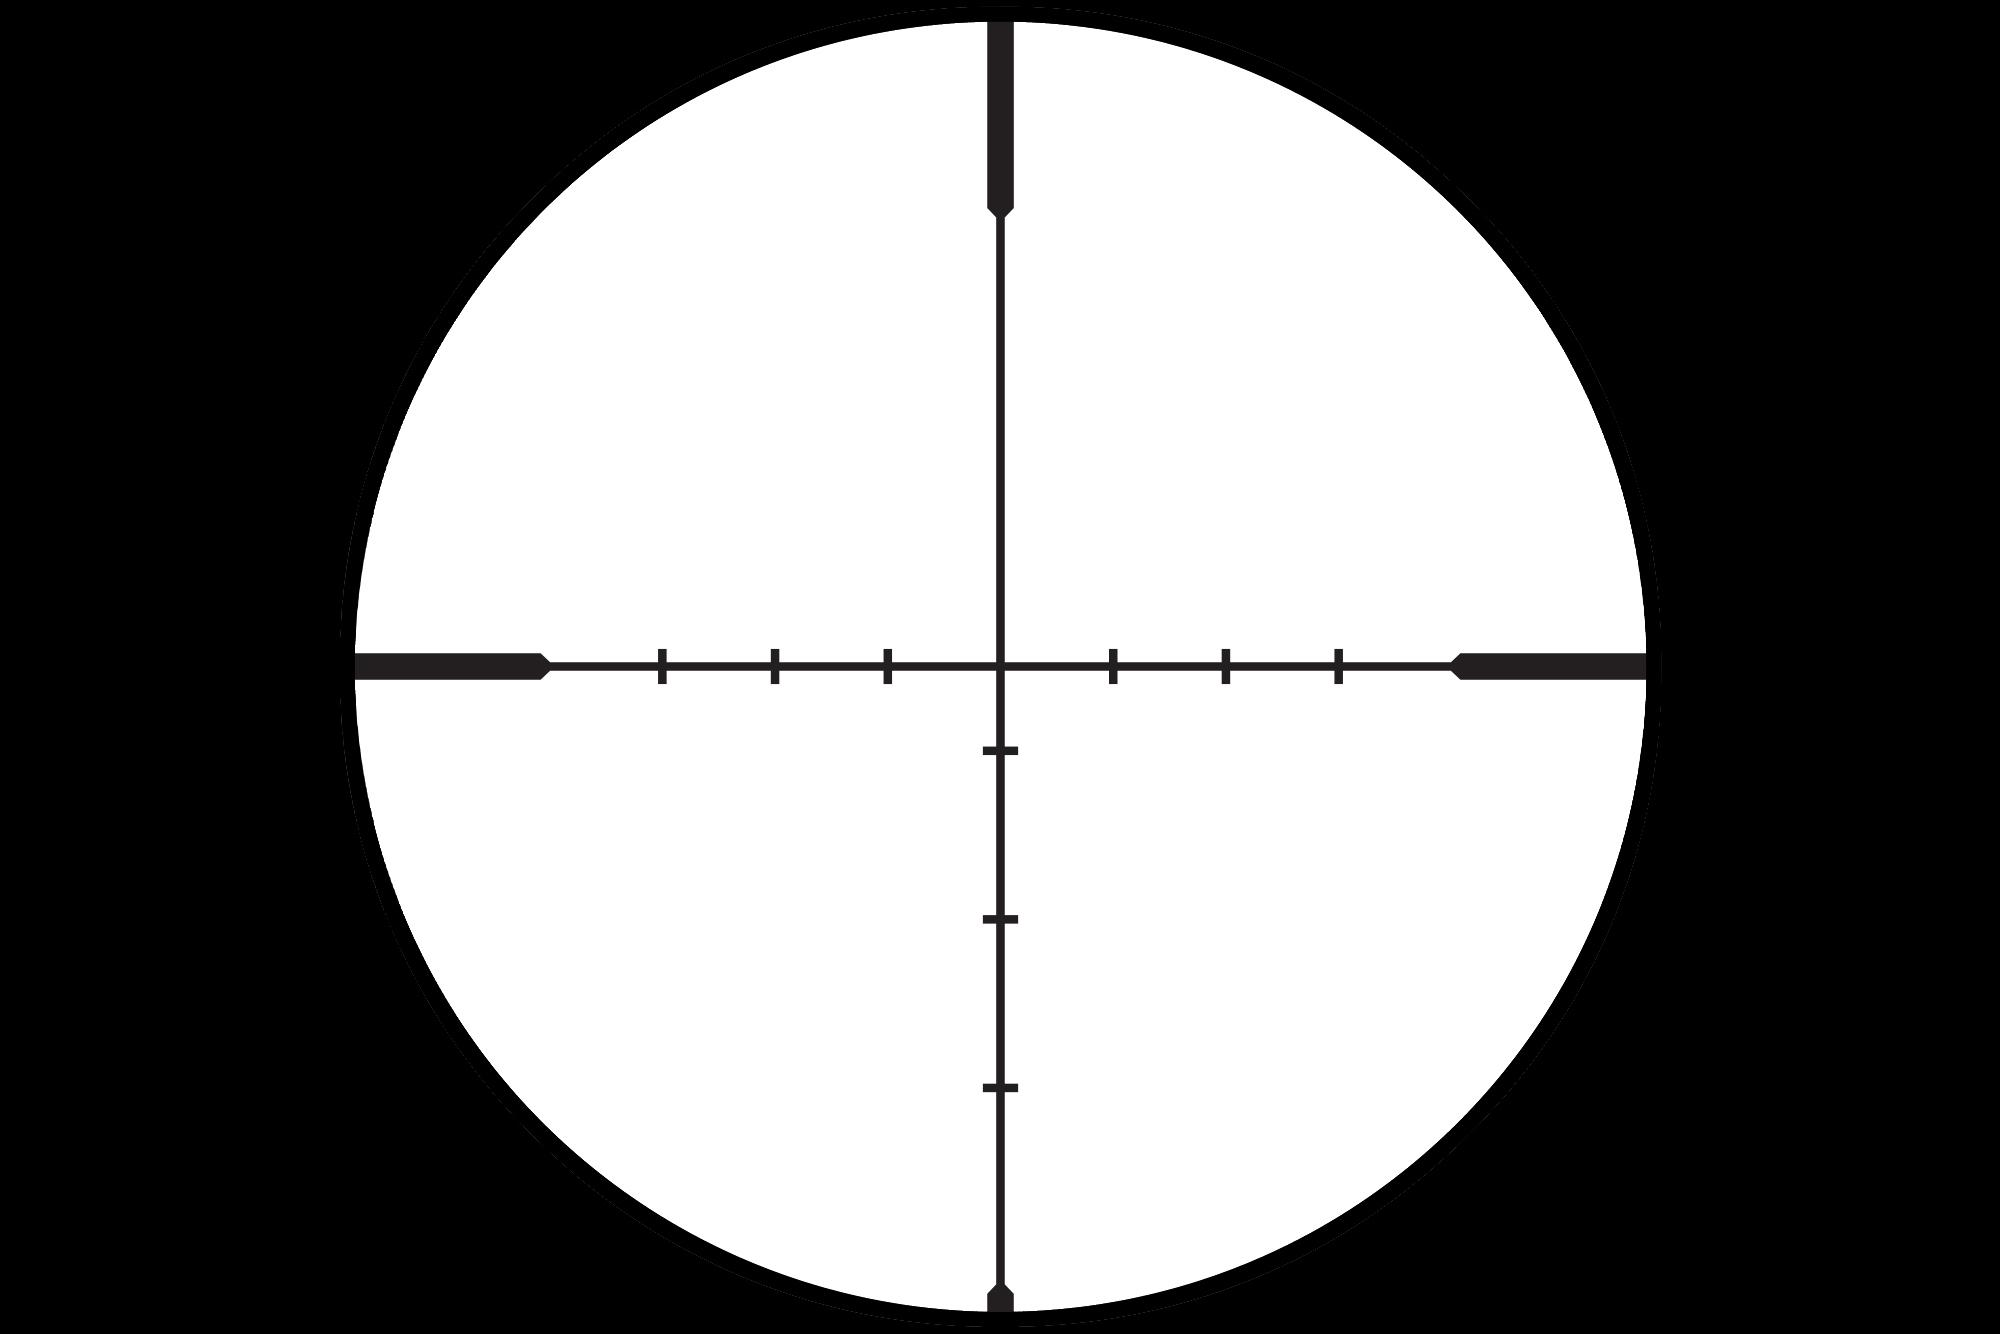 The Vortex optics Crossfire II dead hold bdc reticle at the highest magnification setting